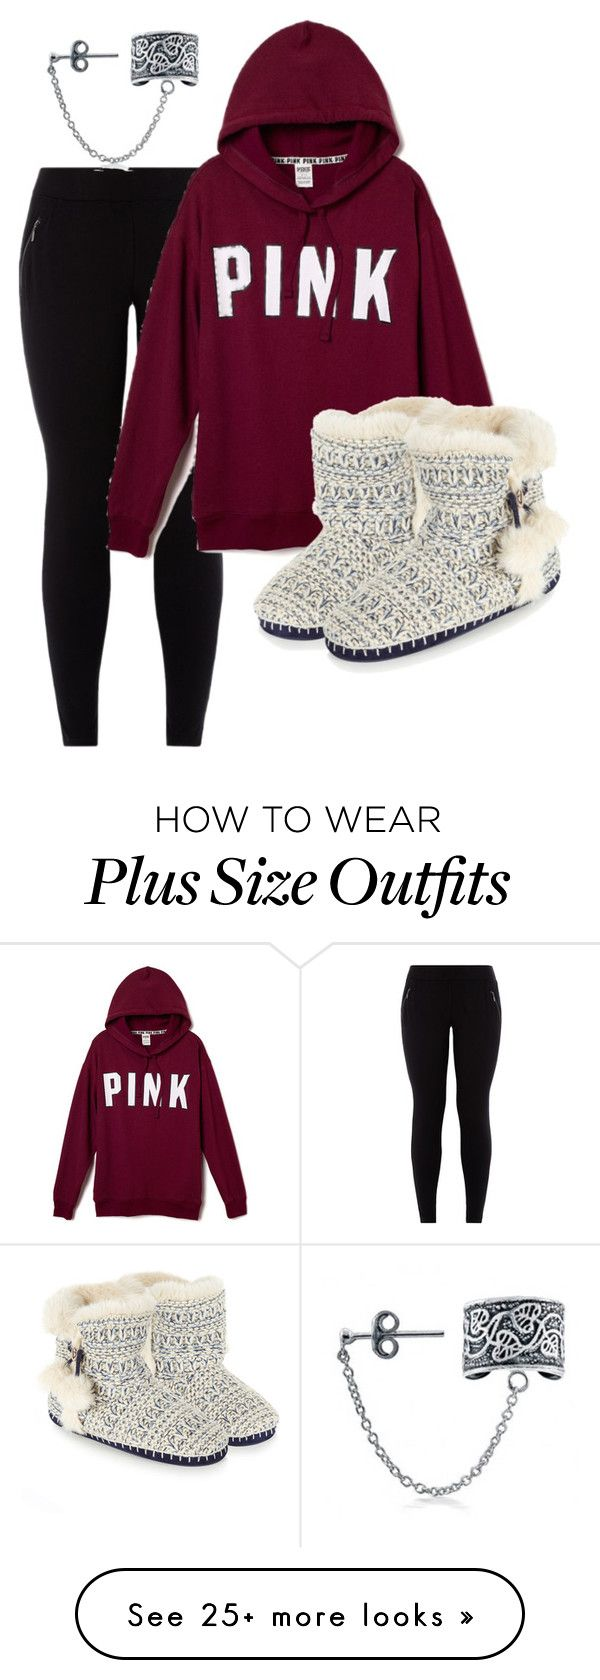 """""""PINK"""" by preppycheer1 on Polyvore featuring Bling Jewelry and Accessorize"""